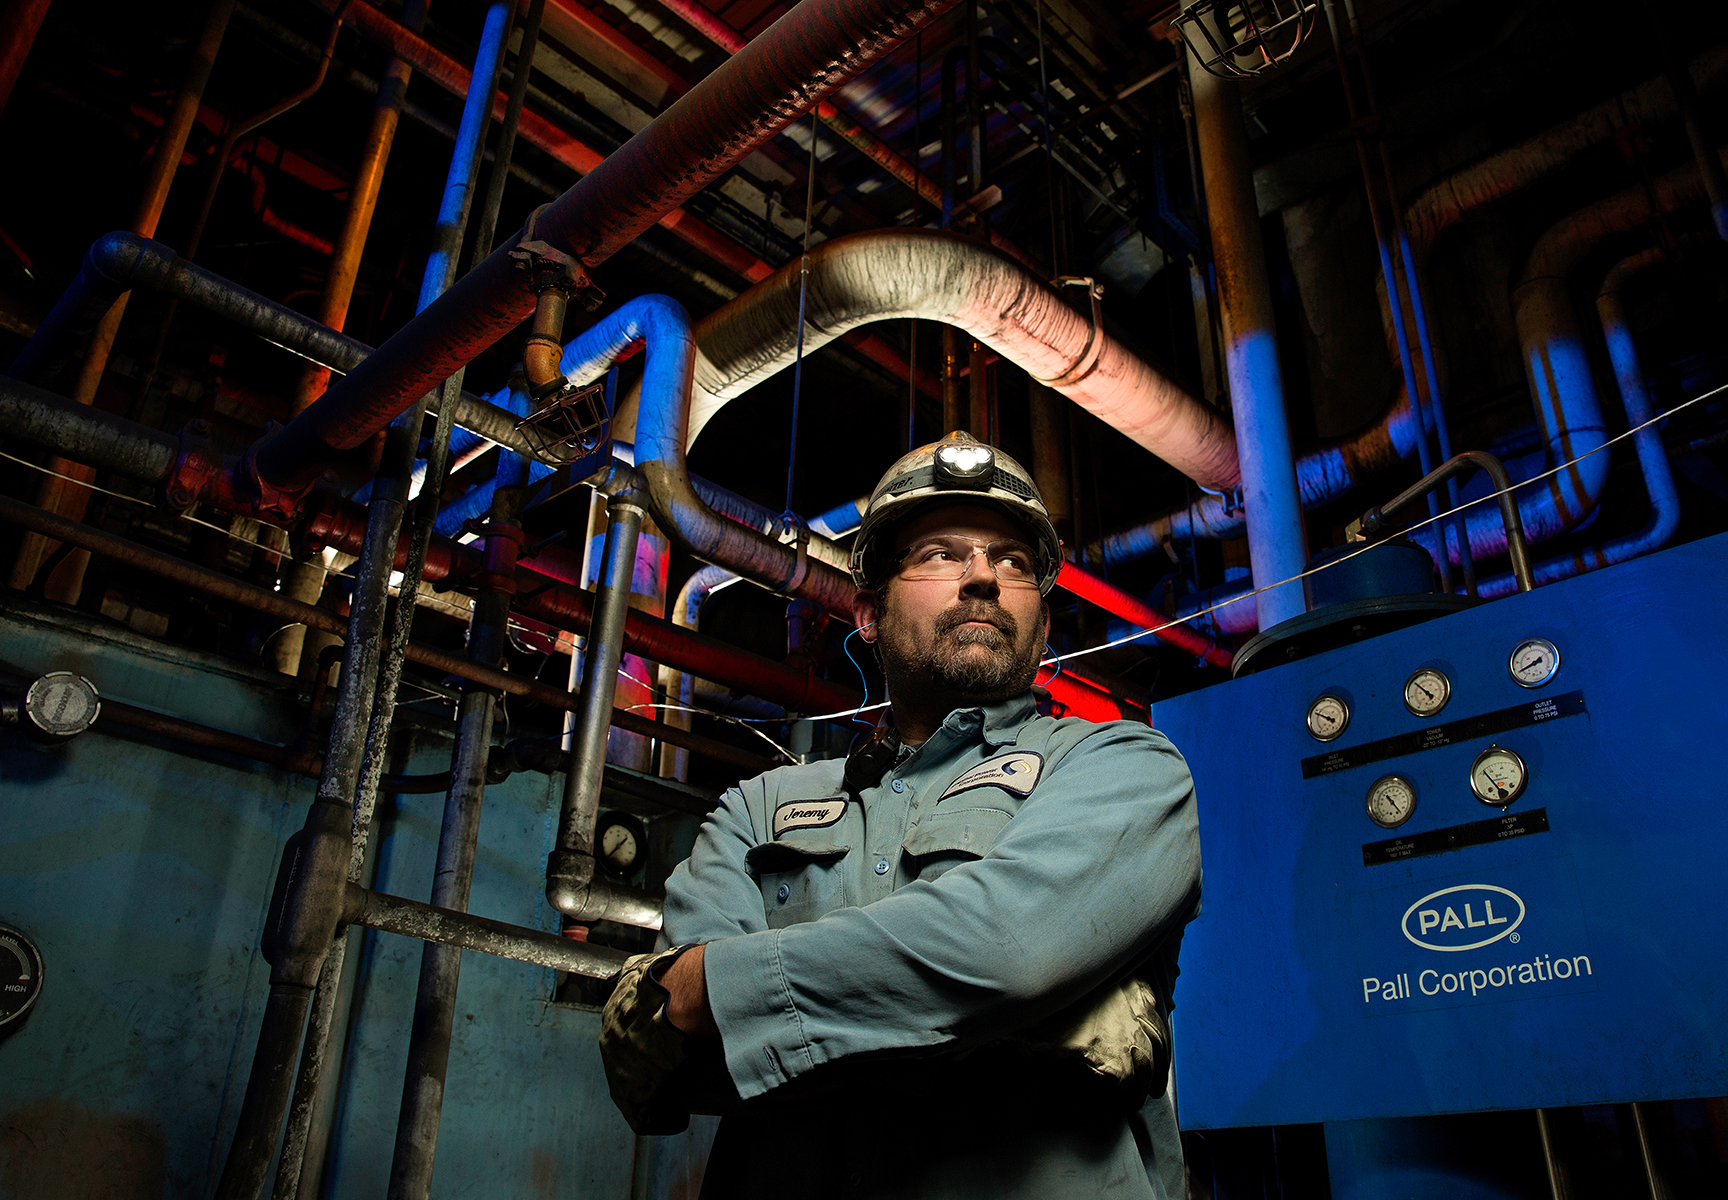 Manufacturing facilities are often dark and difficult to photograph properly. It's especially difficult to create an employee portrait in which the background behind him or her is also visible. At this manufacturing plant, we liked the graphic lines of the overhead pipes and duct work.  To create multiple photographic layers in the final image, we used a four-light system. The main Speedlight unit is positioned high and is zoomed to 105mm, which focuses the light on the worker and makes it seem as if the worker is being light from existing light from the factory. Three other Speedlight units are gelled with blue and red to illuminate the trail of pipes running overhead. The three Speedlights also help illuminate the machines that are part of the manufacturing operations.